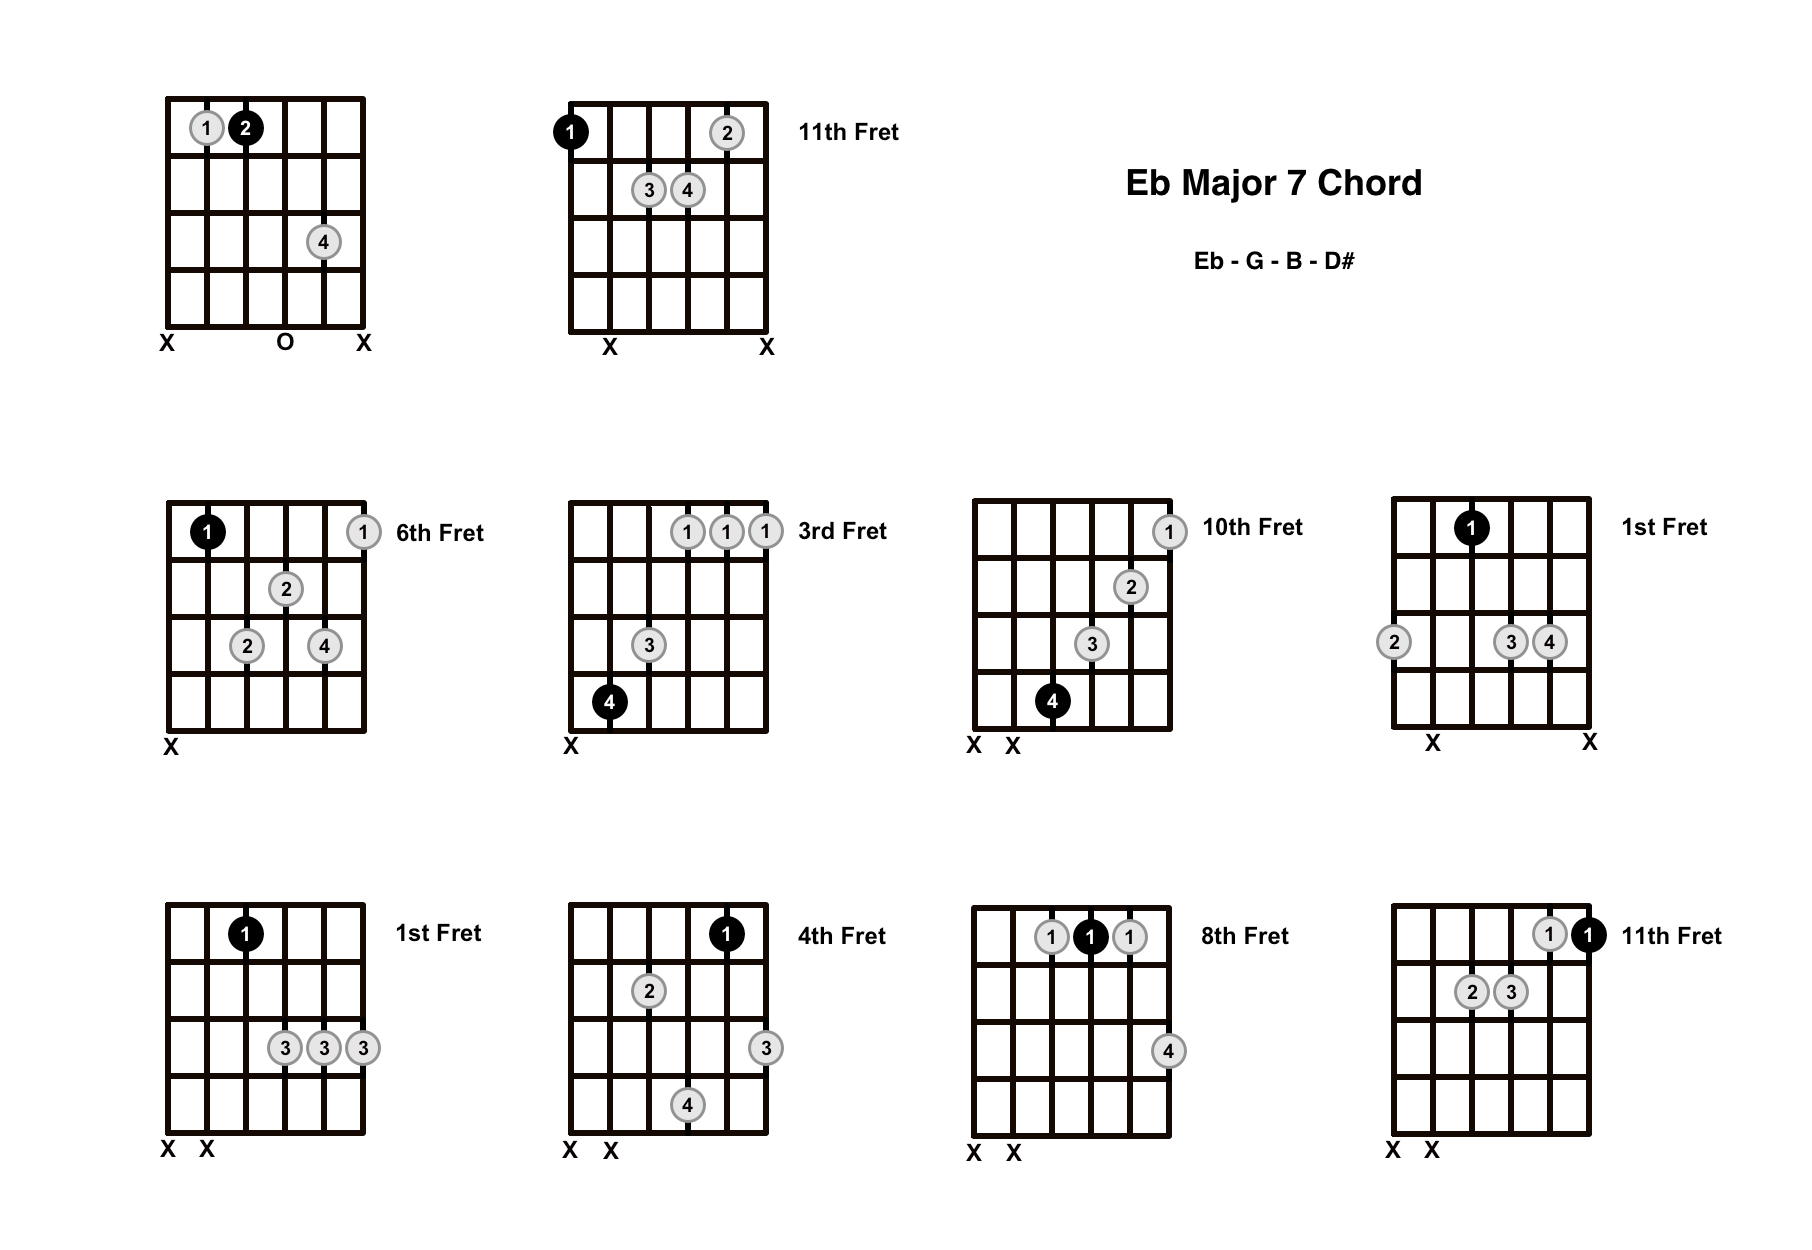 E Flat Major 7 Chord On The Guitar (Eb Maj 7) – Diagrams, Finger Positions and Theory